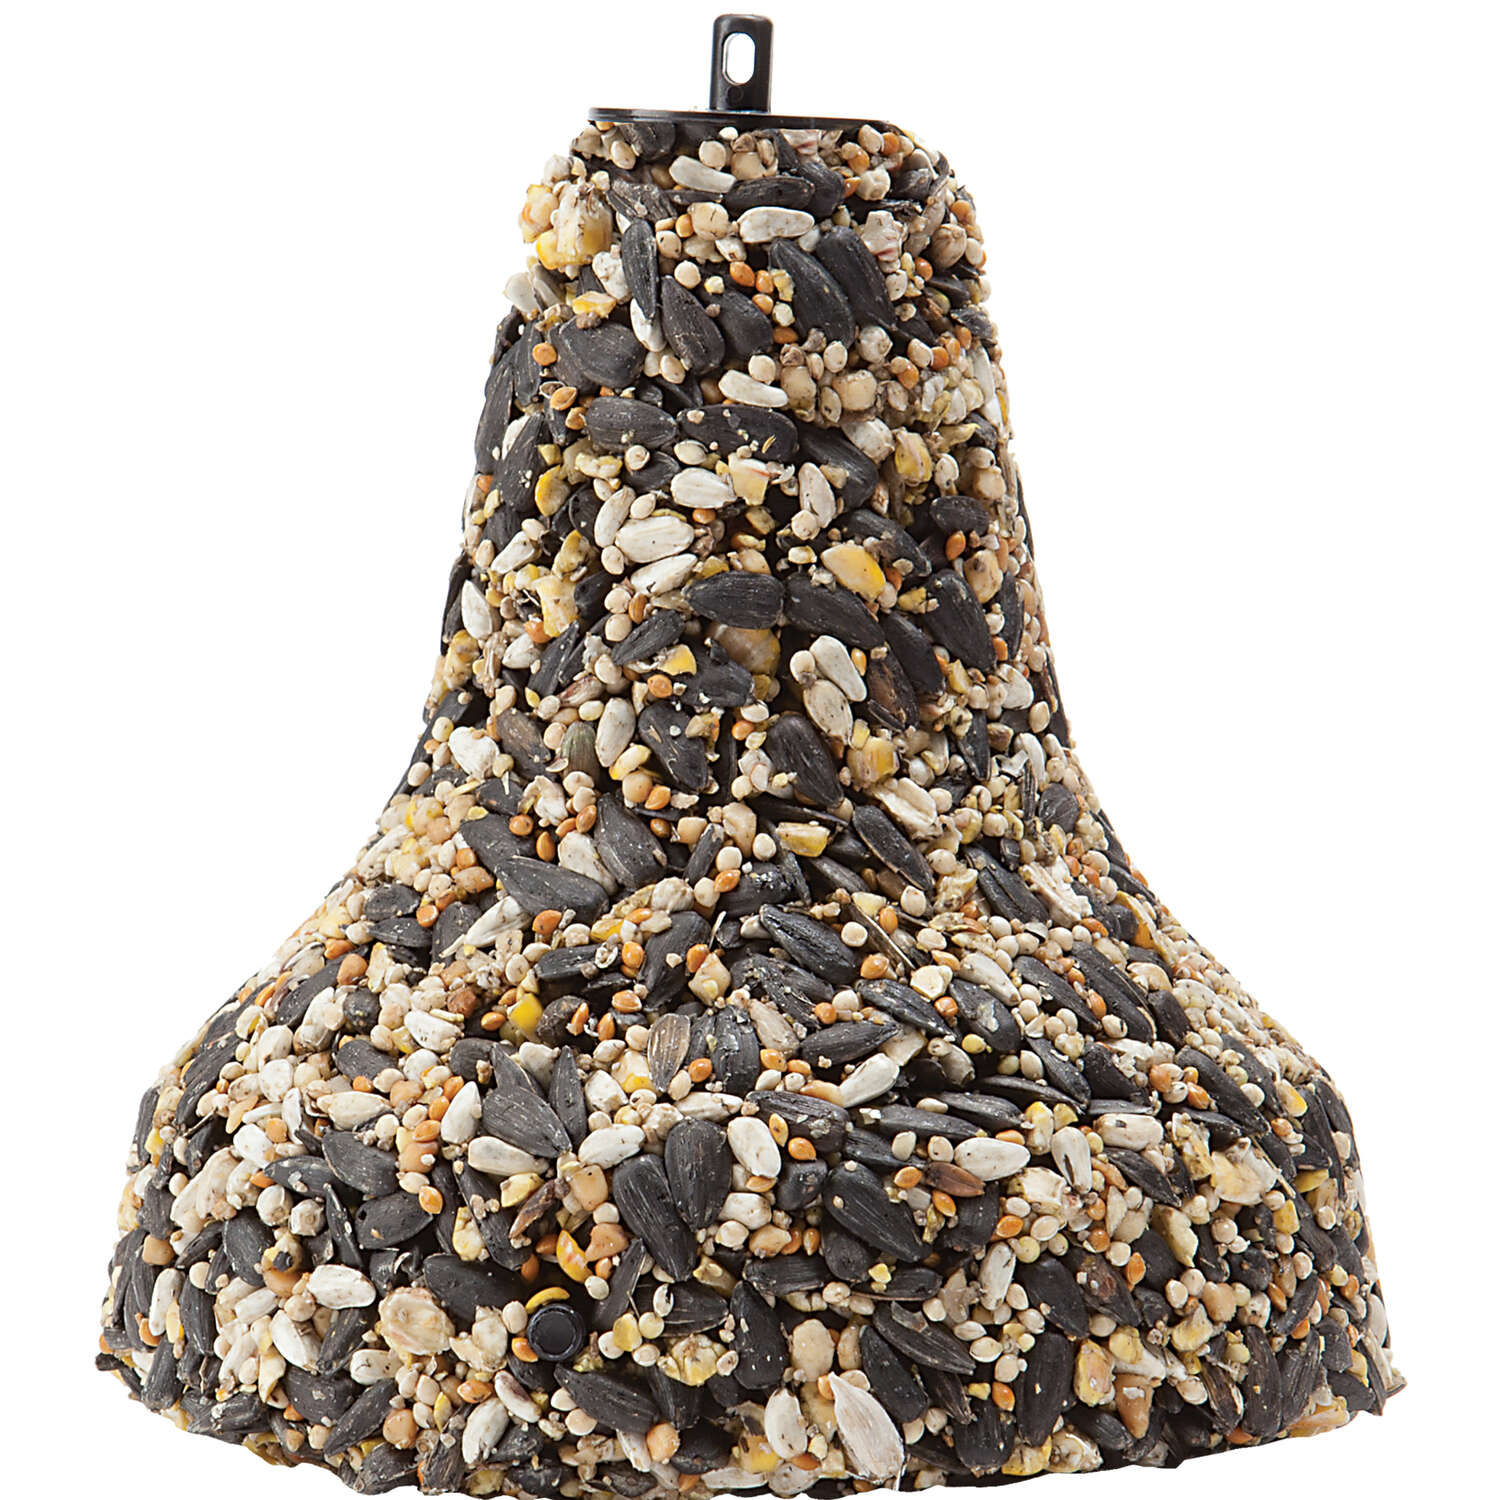 Kaytee  Nuthatch  Wild Bird Seed Bell  Sunflower Seeds  13 oz.